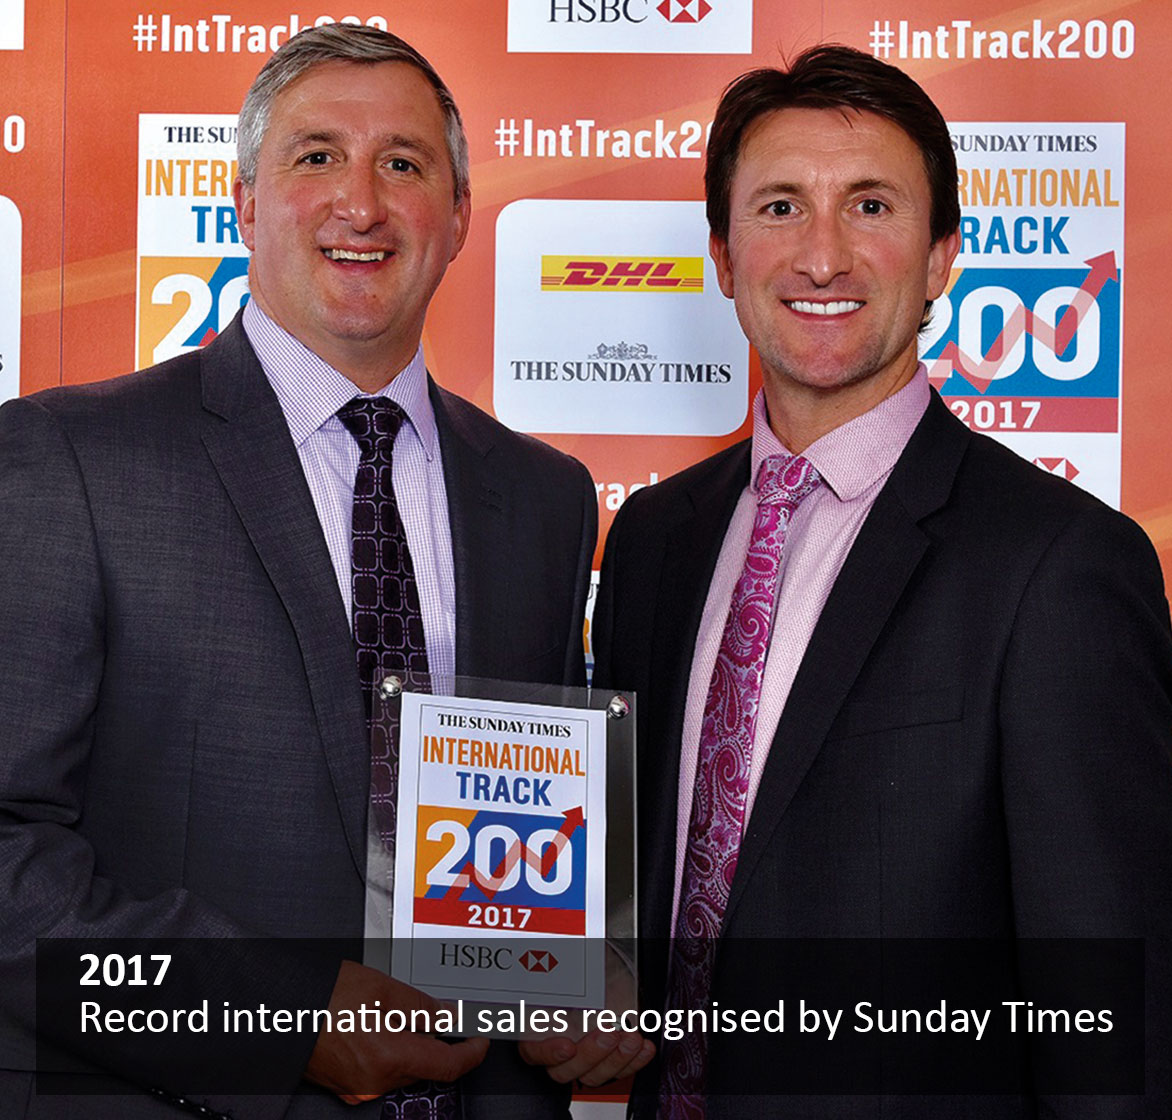 Record international sales recognised by Sunday Times